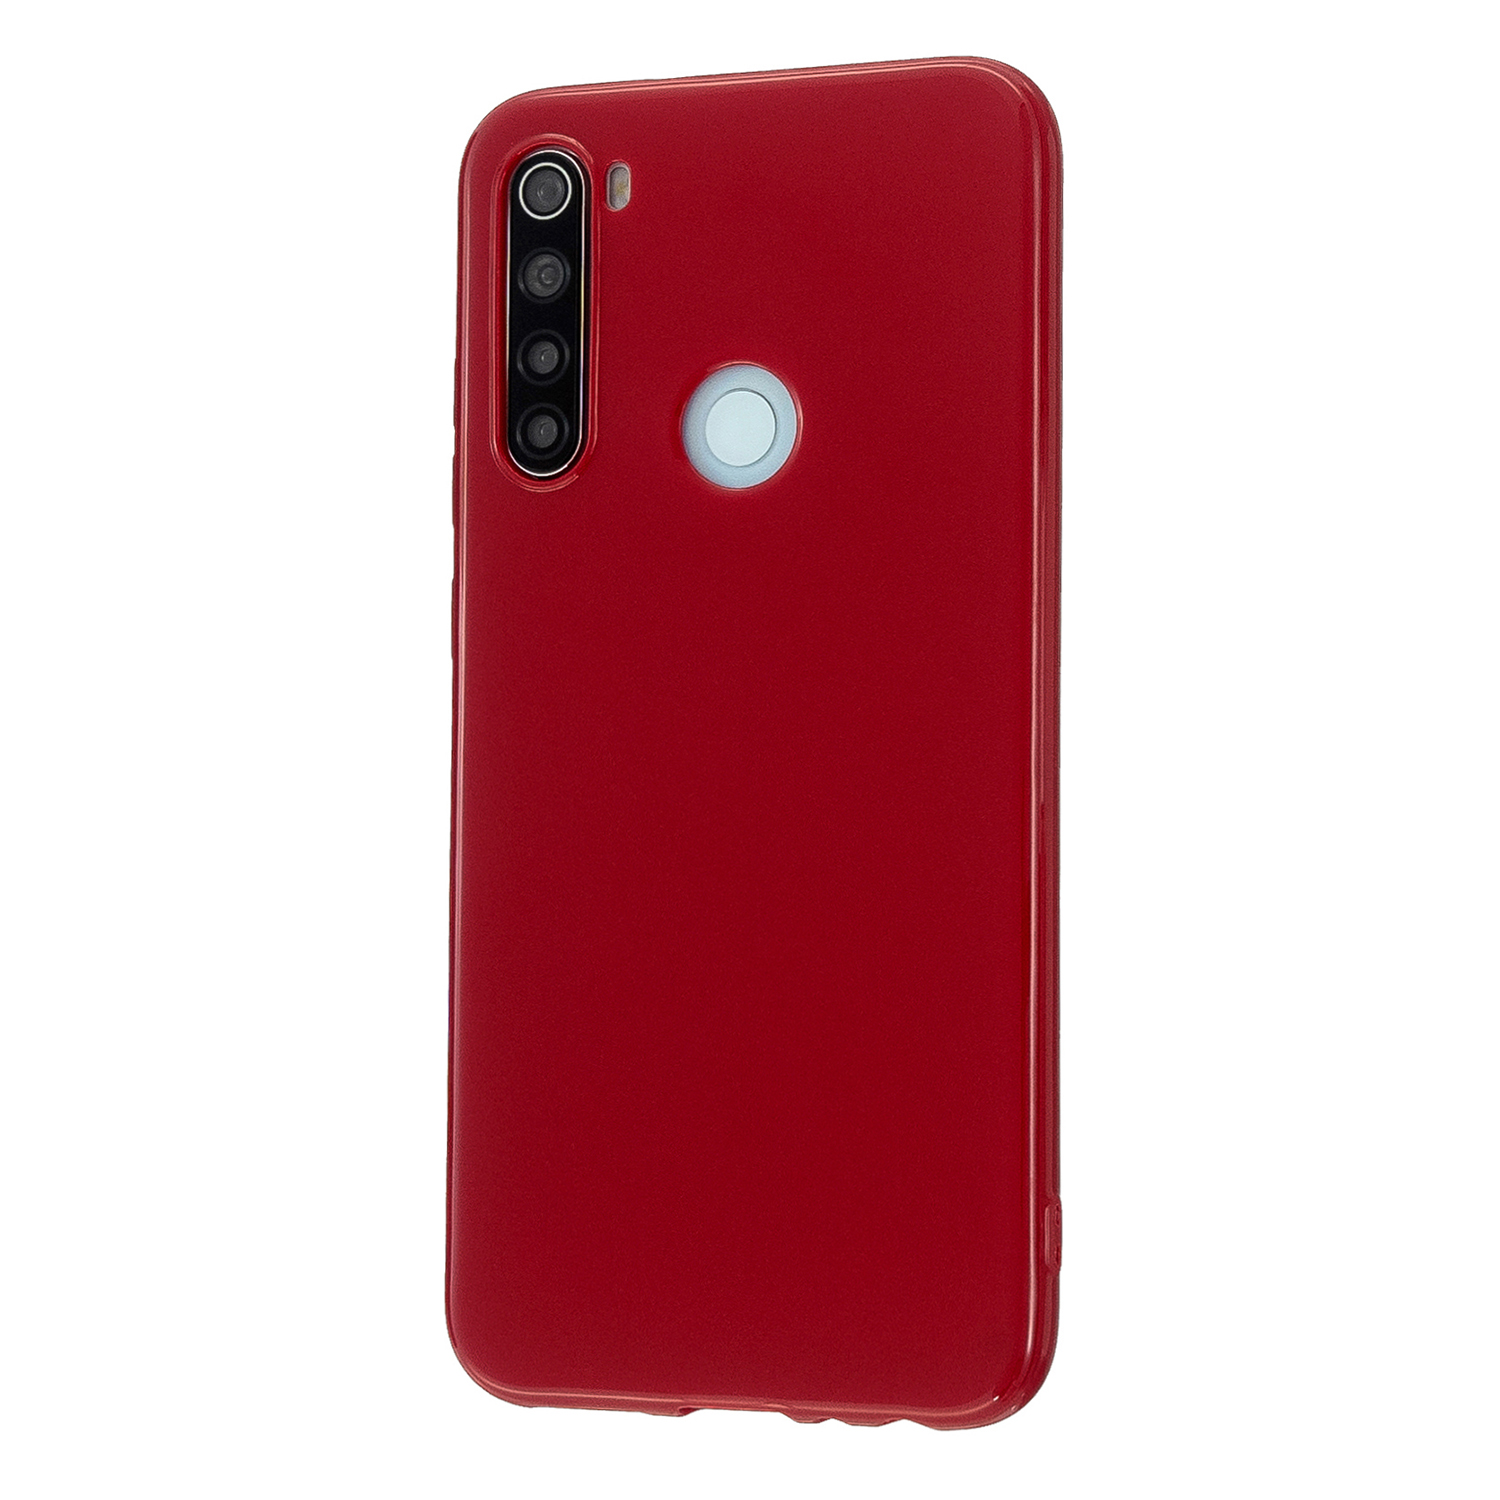 For Redmi Note 8/8 Pro Cellphone Cover Reinforced Soft TPU Phone Case Anti-scratch Full Body Protection Rose red